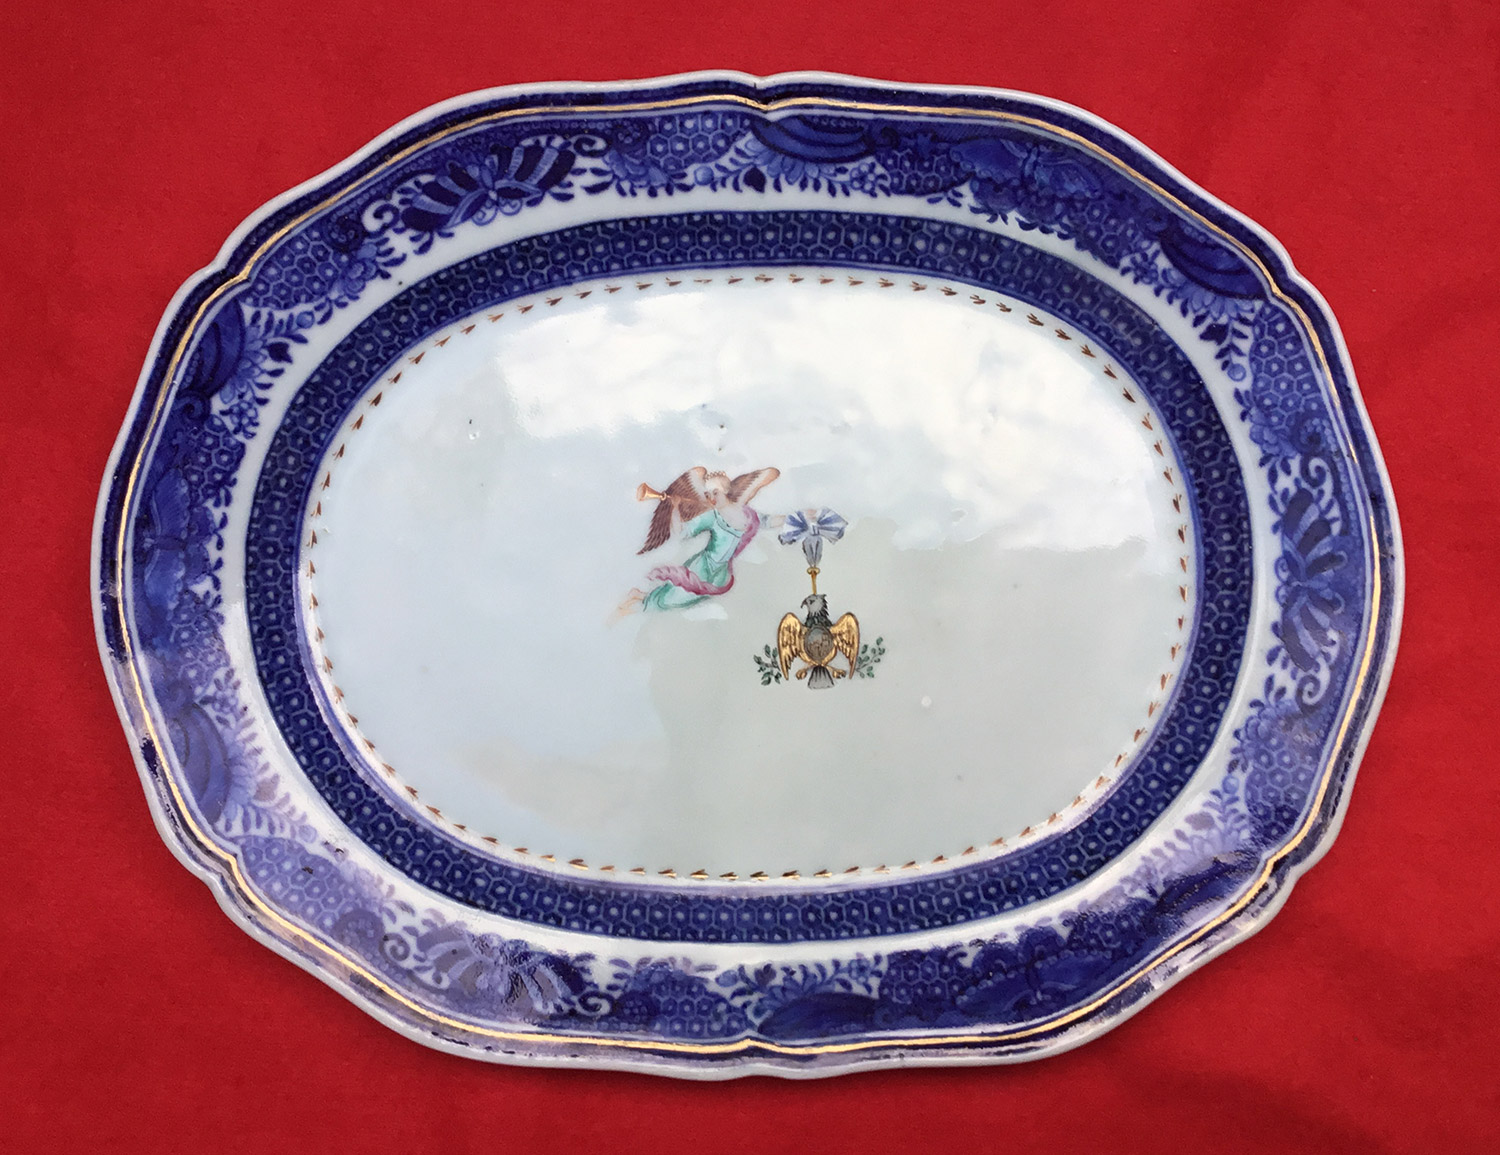 george-washington-small-oval-platter white house china